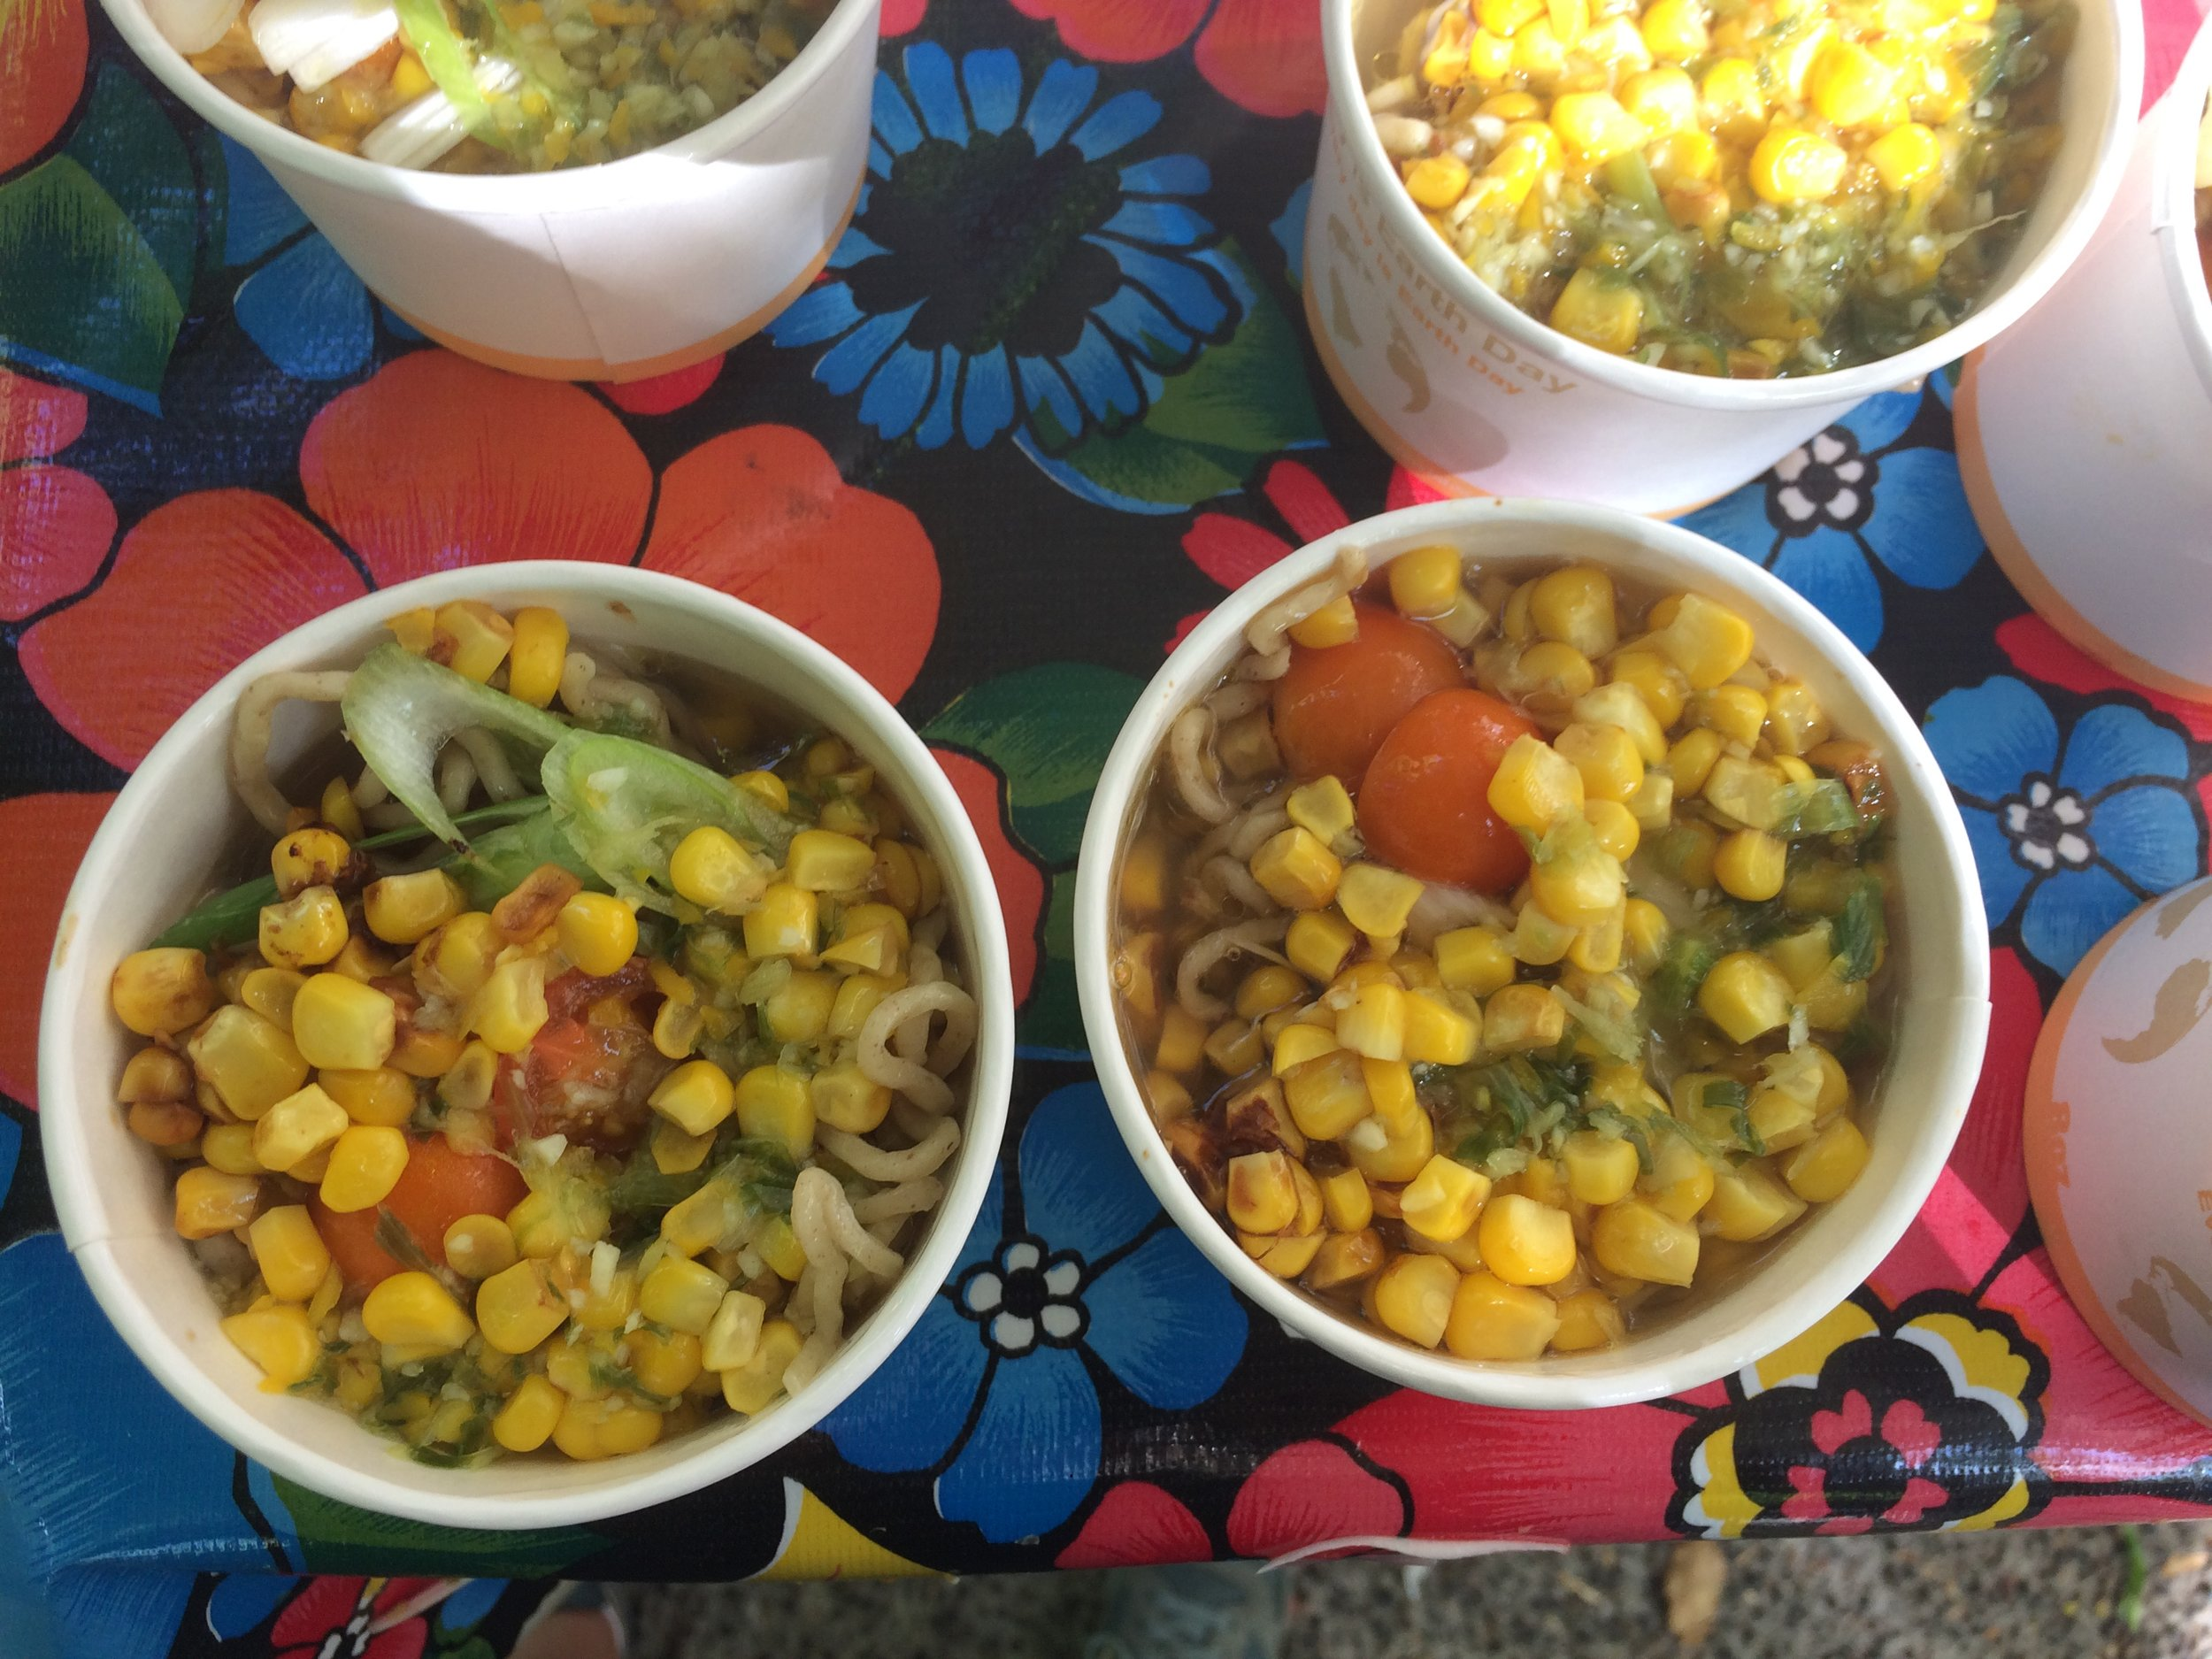 Small samples we dished out at the Portland Farmers Market when we demoed this dish in early September.